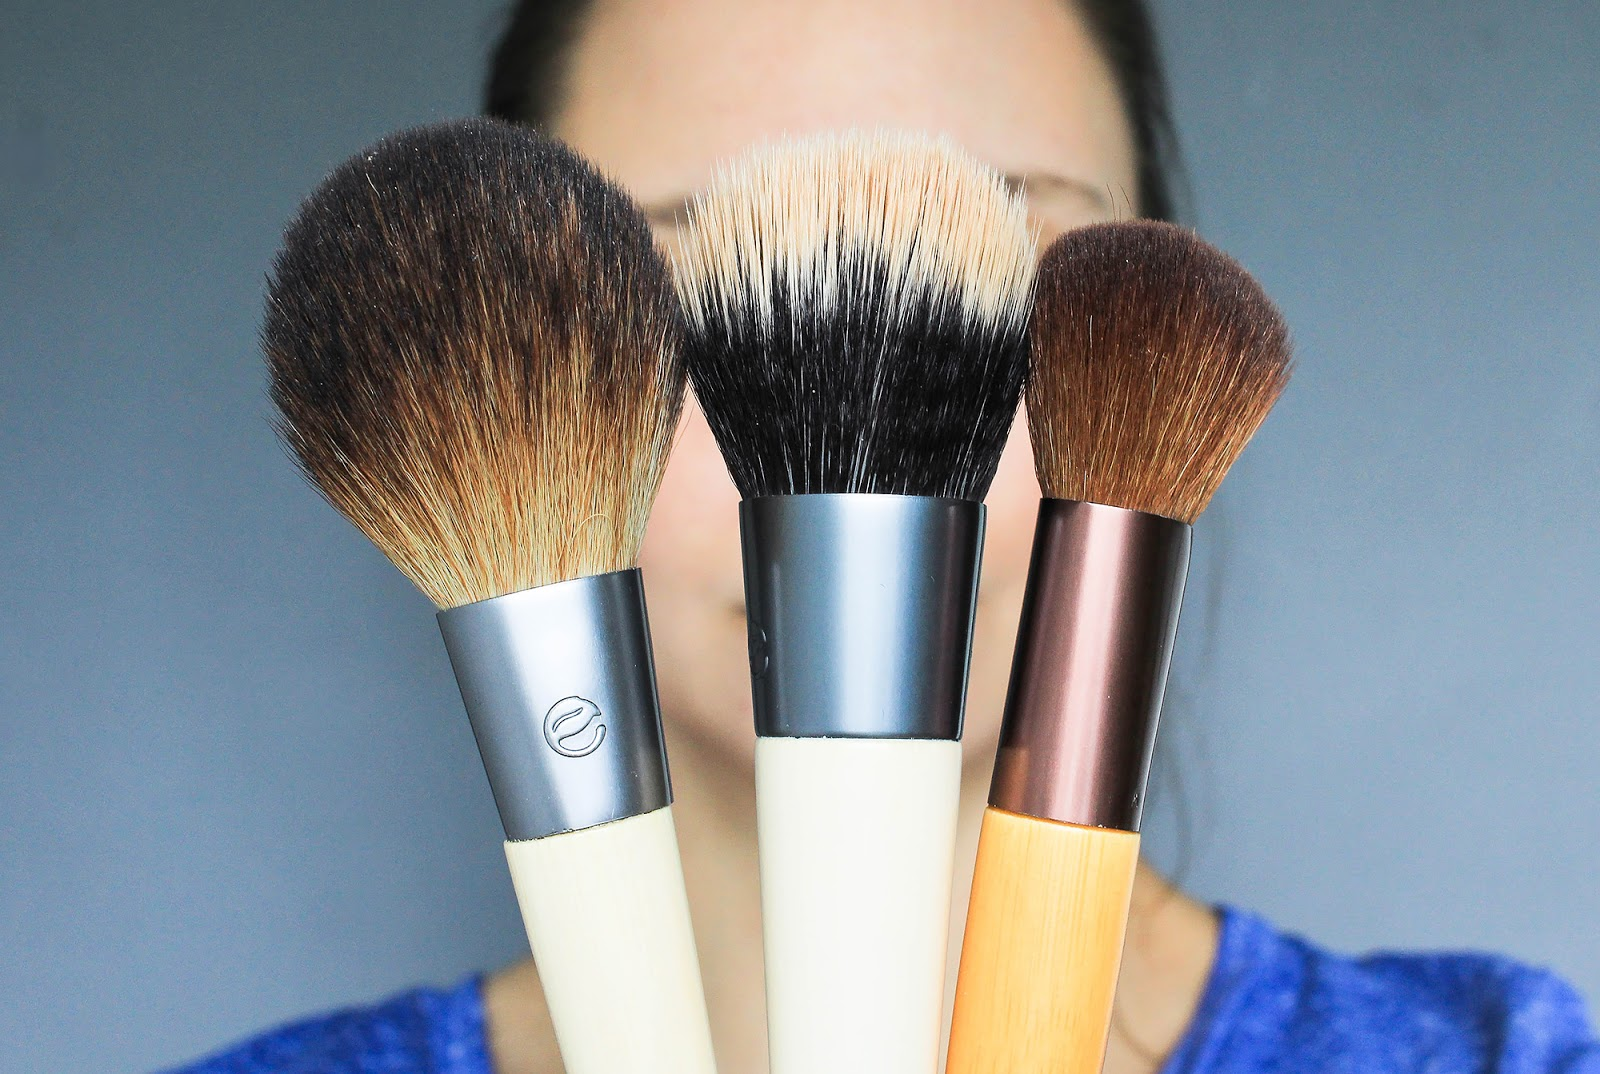 EcoTools Bamboo Sher Powder, Blending & Bronzing, Precision Blush Makeup Brushes. Vegan, cruelty free.